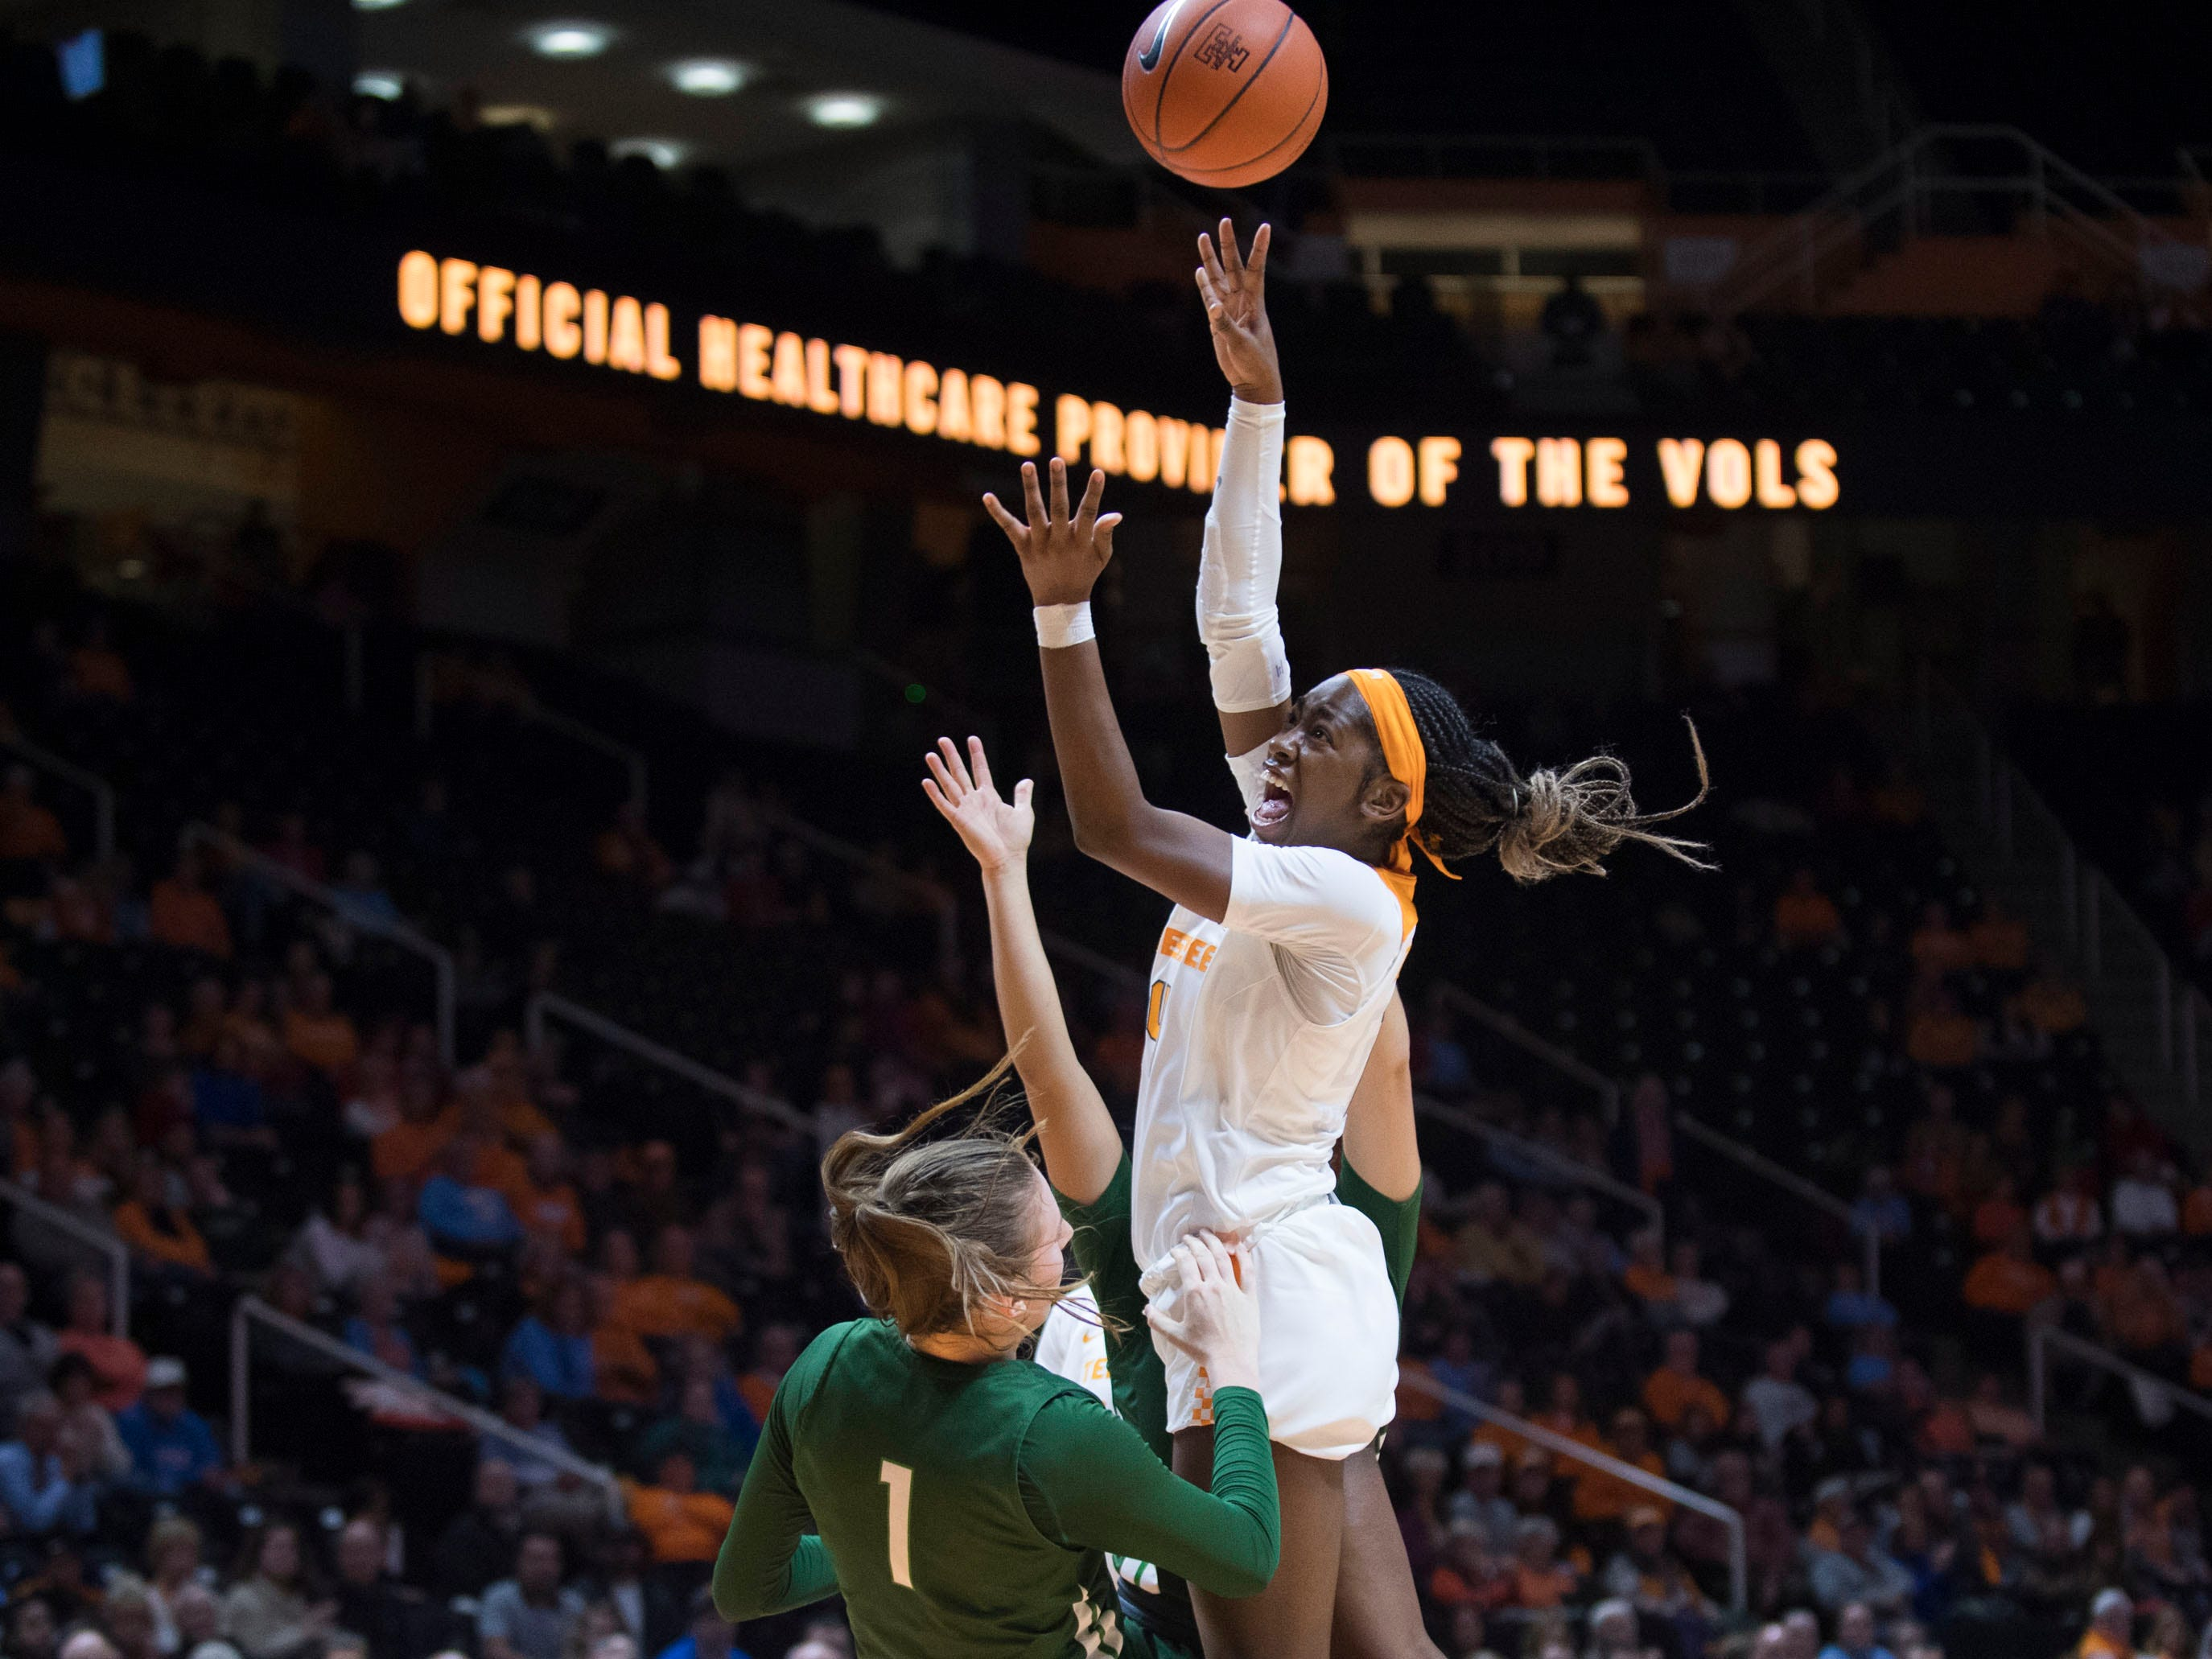 Tennessee's Zaay Green (14) attempts to score while defended by Stetson's Sarah Sagerer (1) at Thompson-Boling Arena on Wednesday, December 5, 2018.